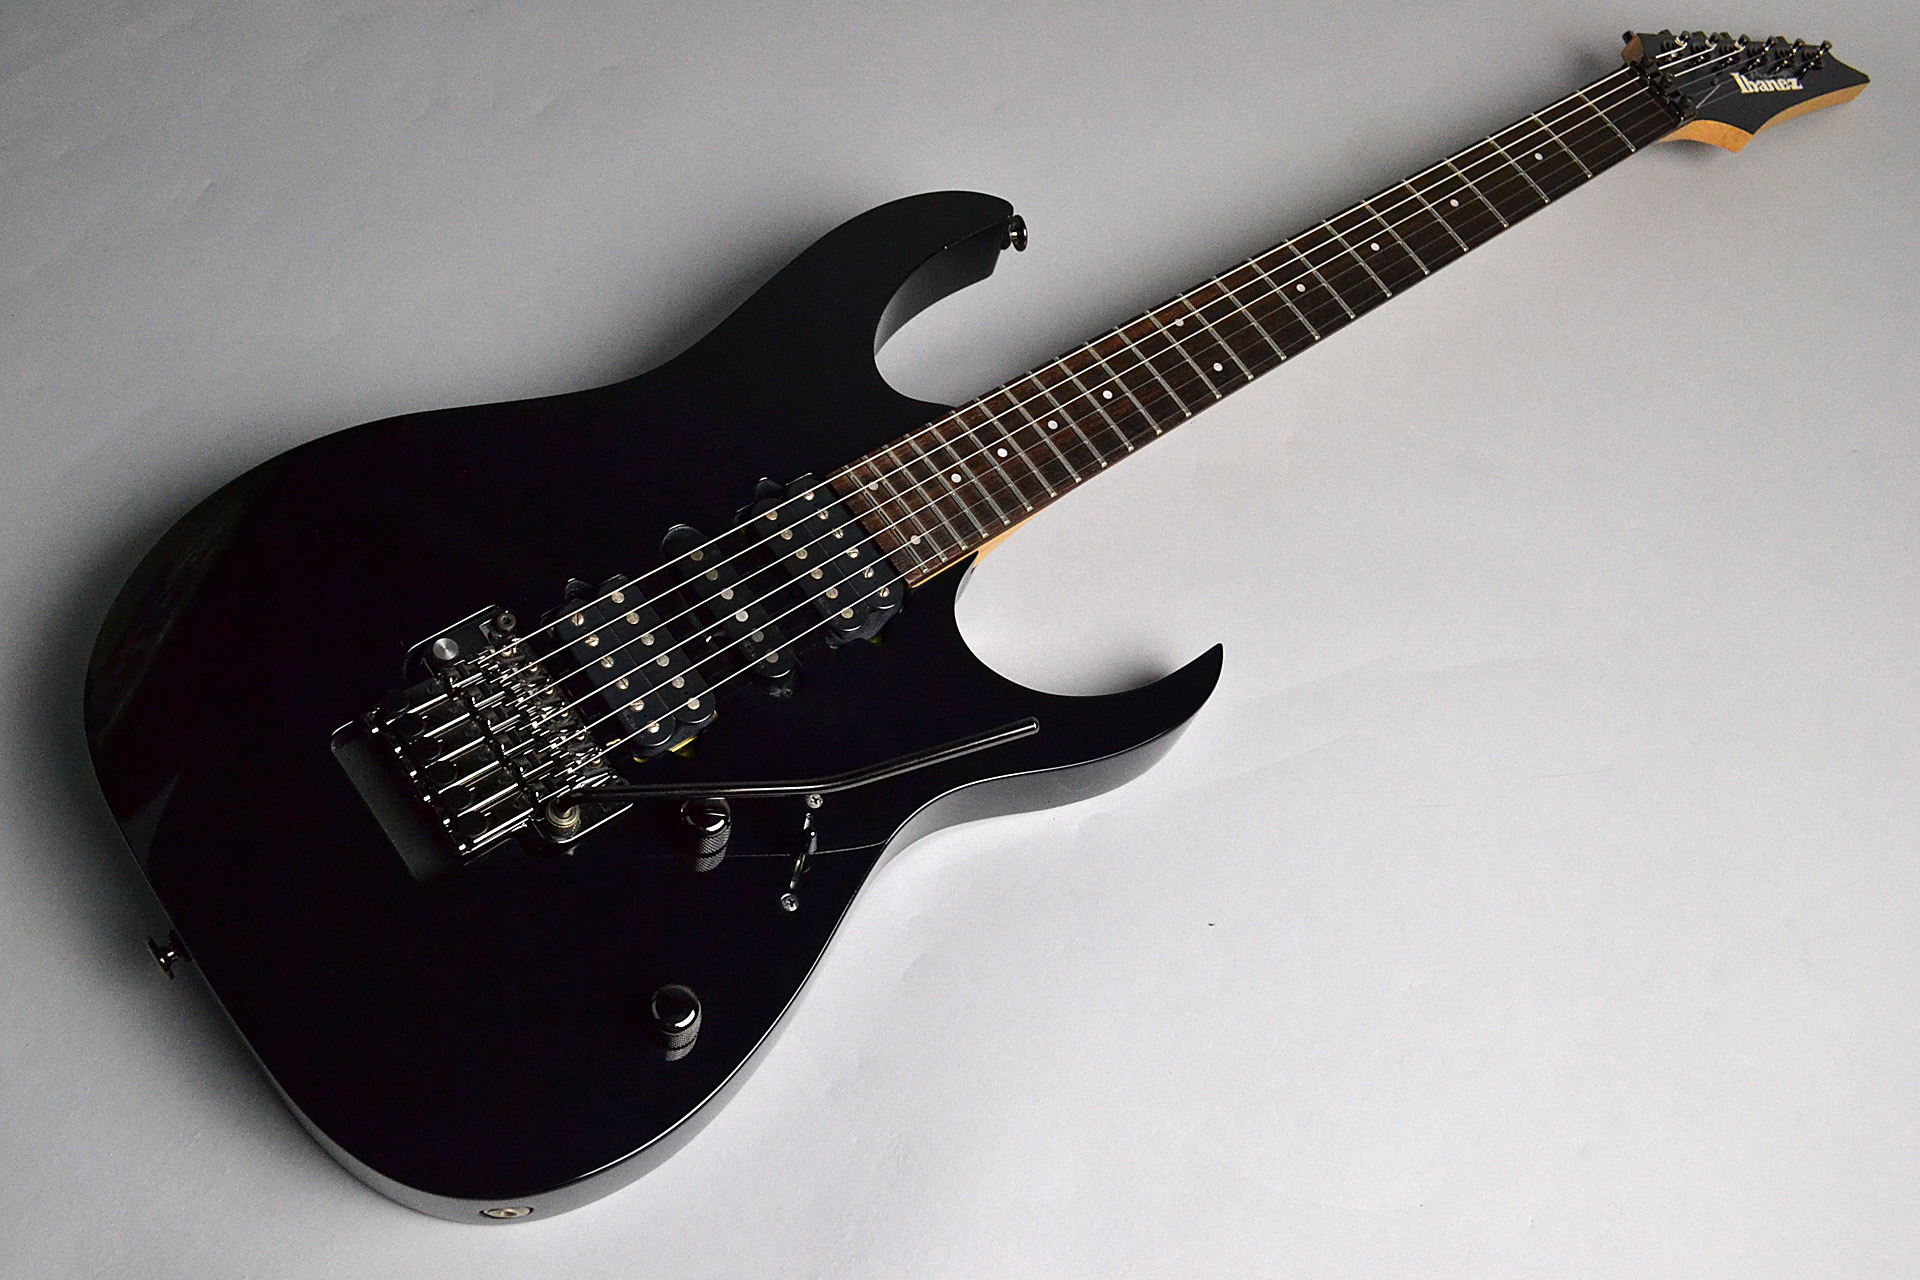 USED/ RG2570ZA MYM Prestige Mystic Night Metallic